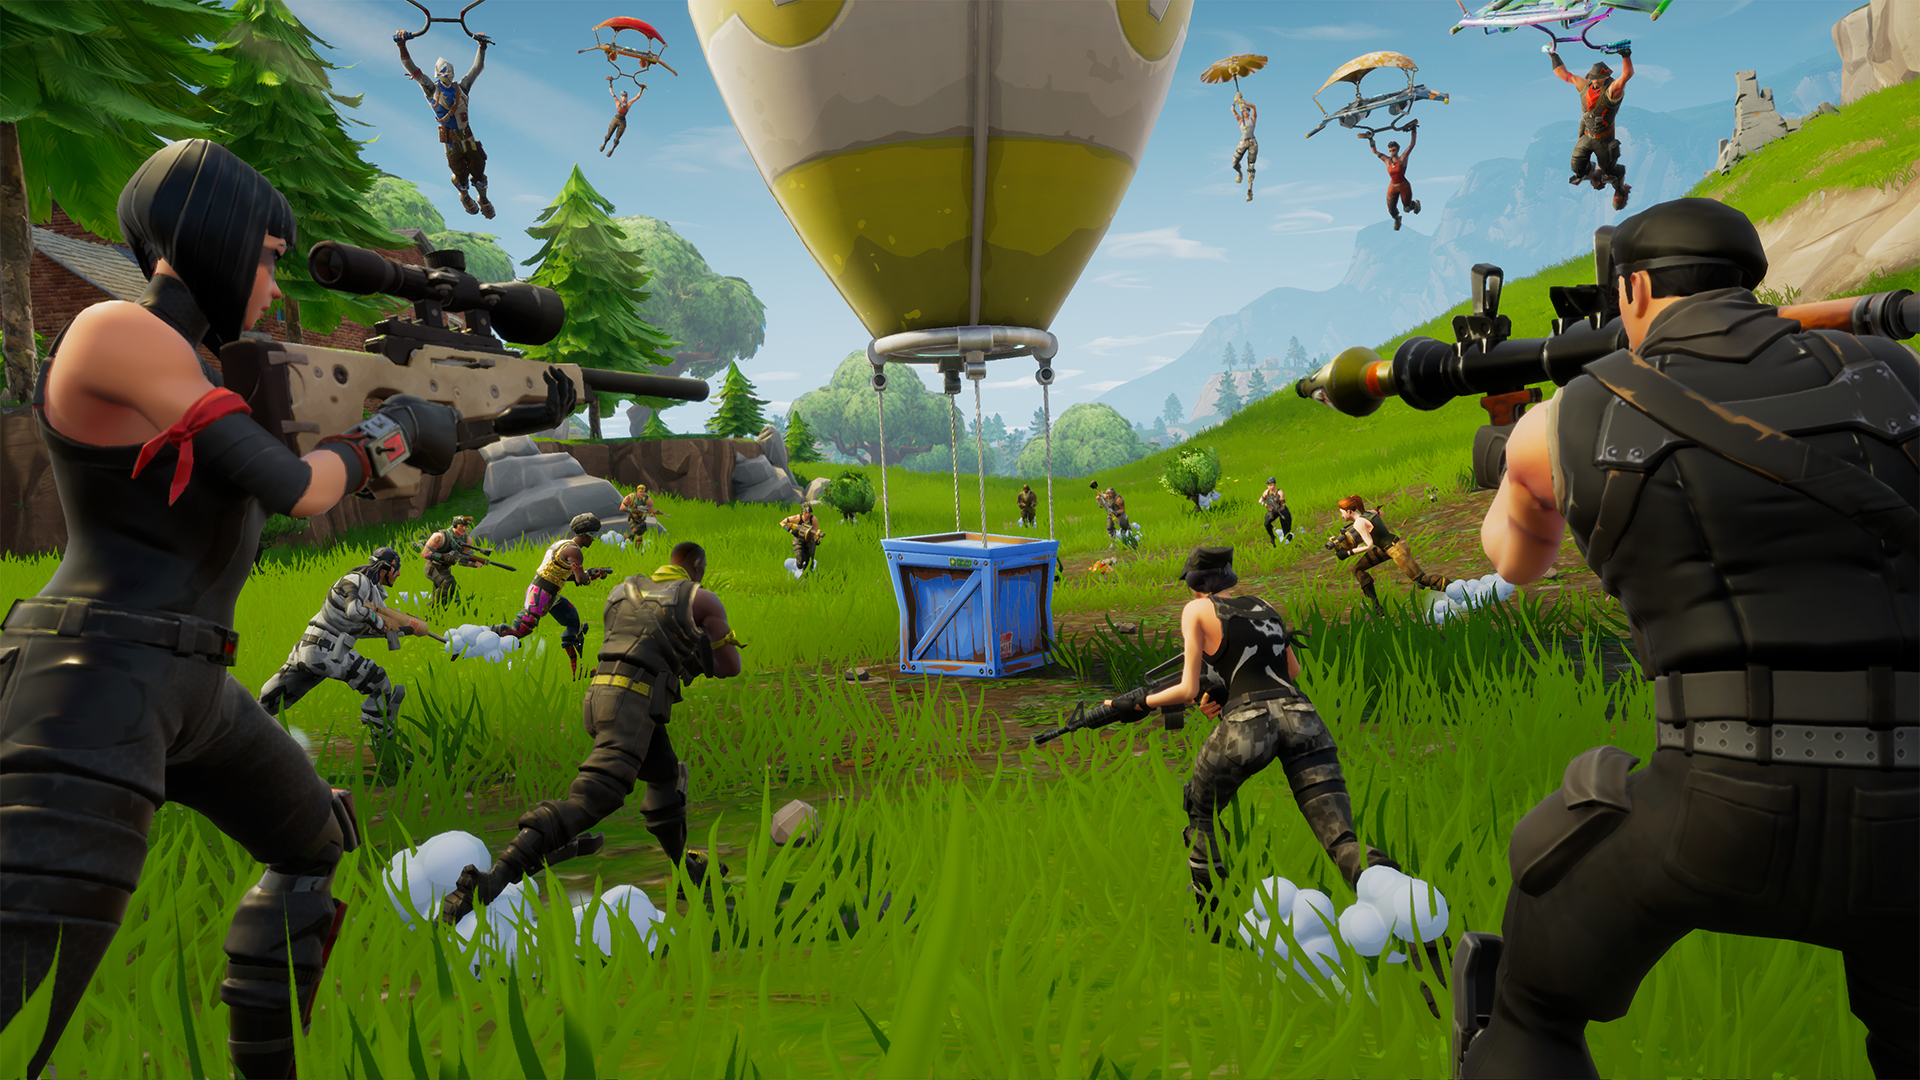 Fortnite for Android only from the Epic Games website